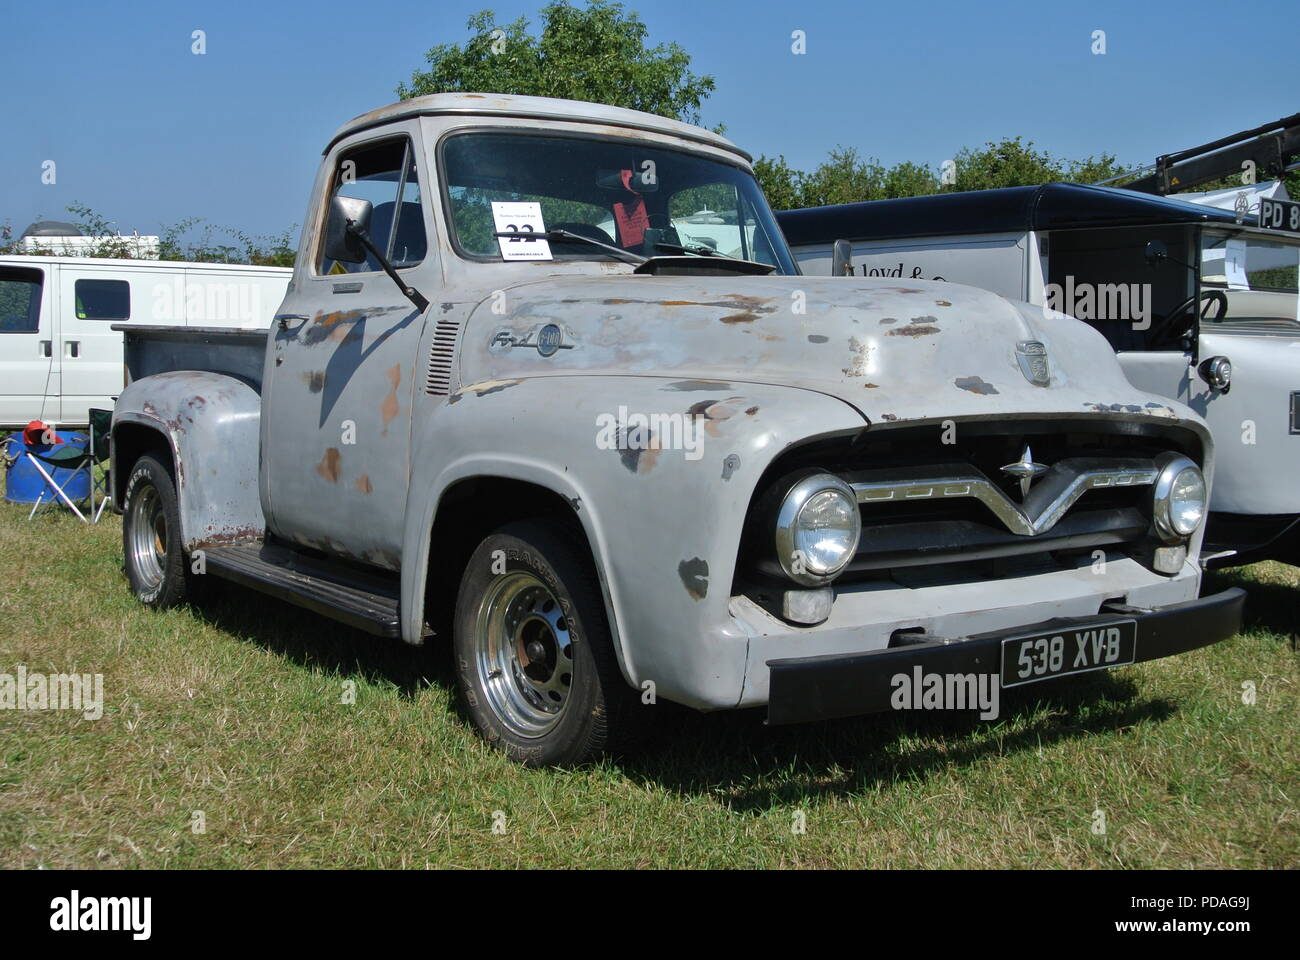 1955 Ford Stock Photos Images Alamy F100 Paint A Pickup Truck Parked Up On Display At Torbay Steam Fair Churston